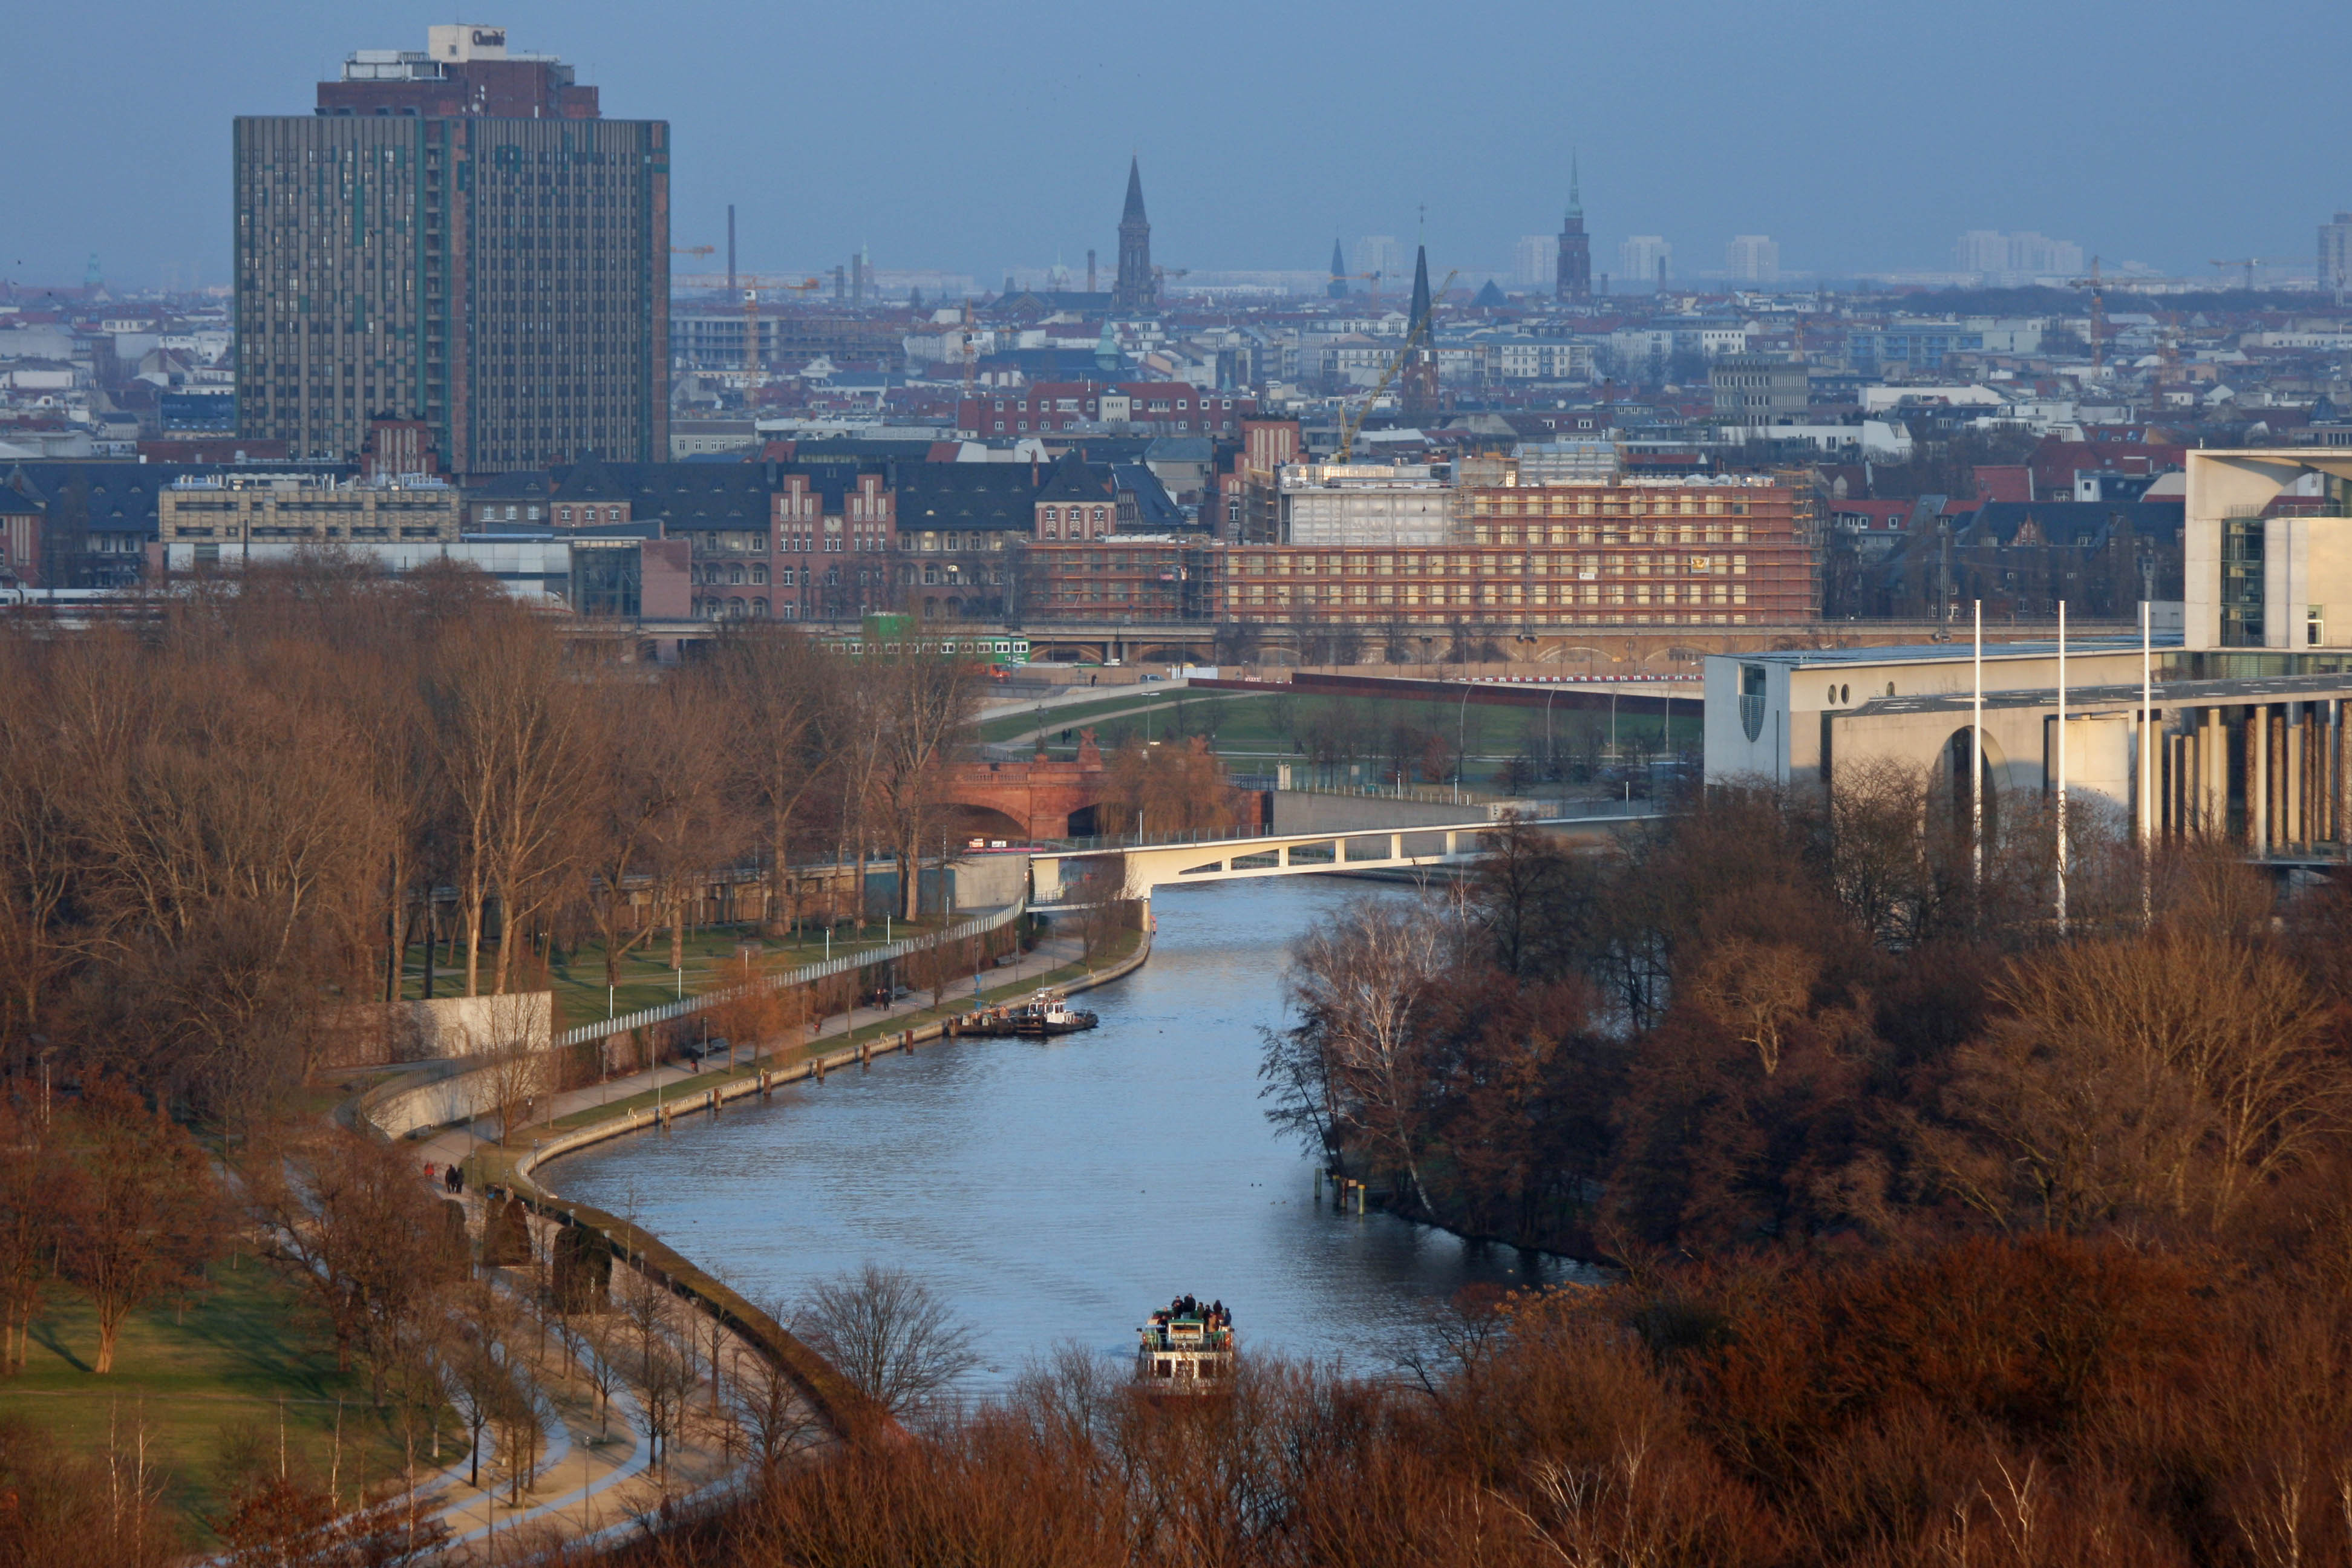 The view over The Spree and Tiergarten from the Siegessäule (Victory Column) in Berlin